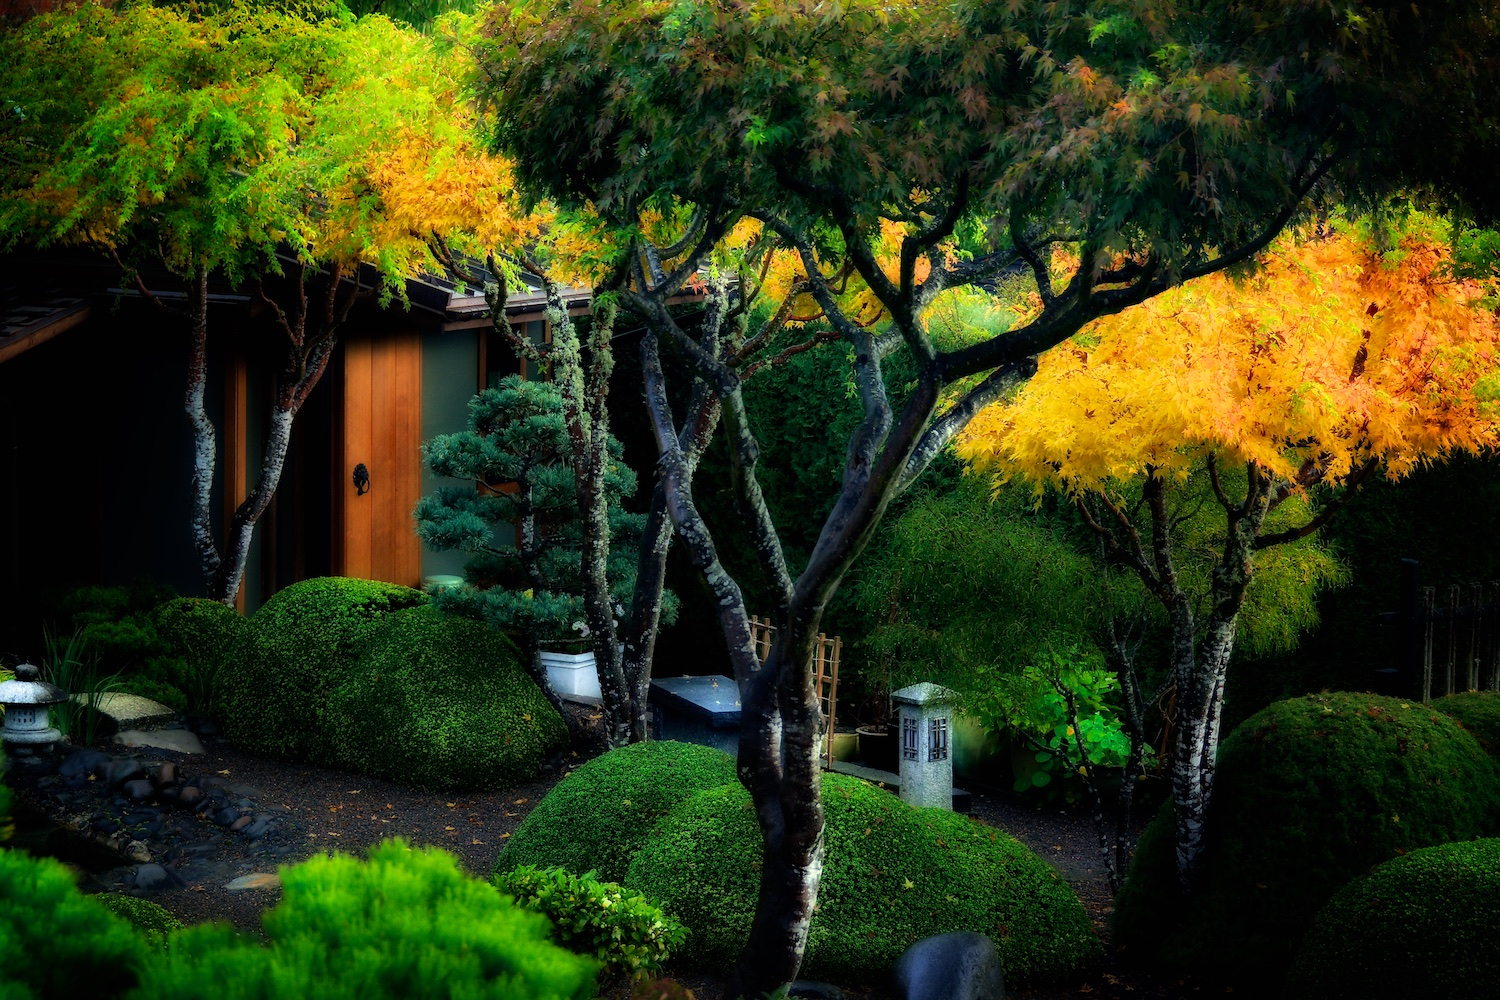 Japanese maples  Acer palmatum  'sango kaku' surrounding the tea house